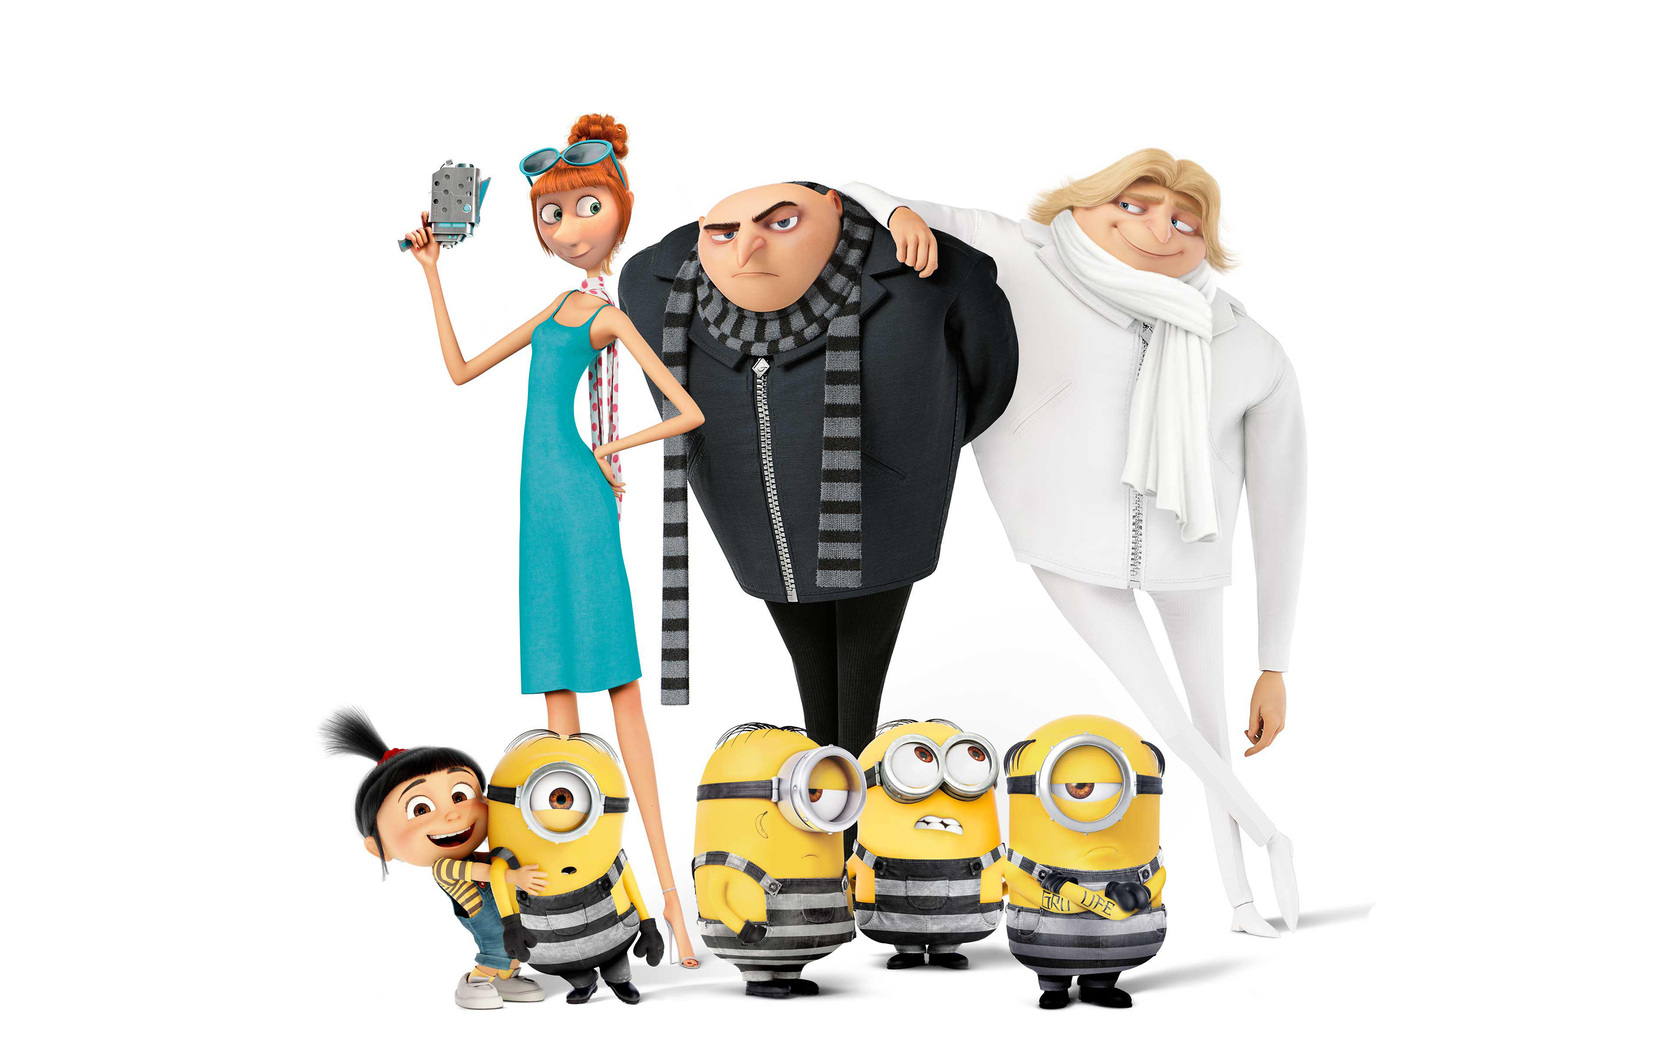 despicable-me-3-2017-uj.jpg